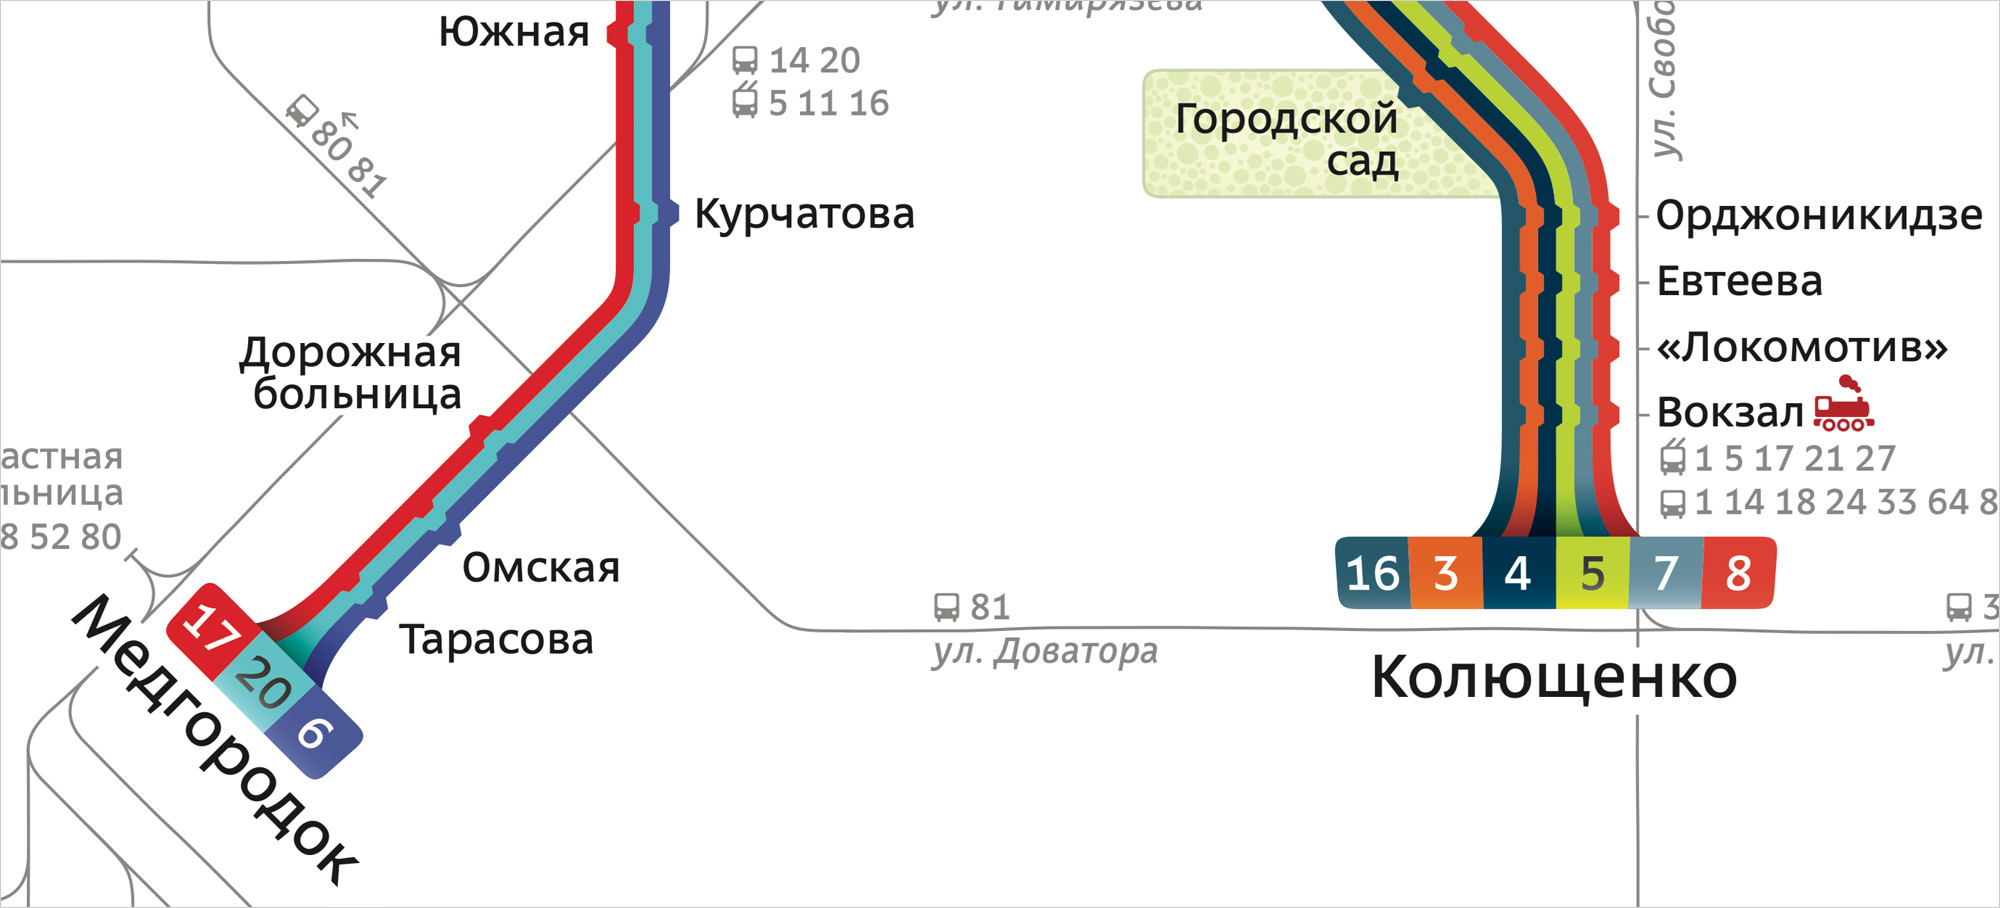 Transport map design. Chelyabinsk